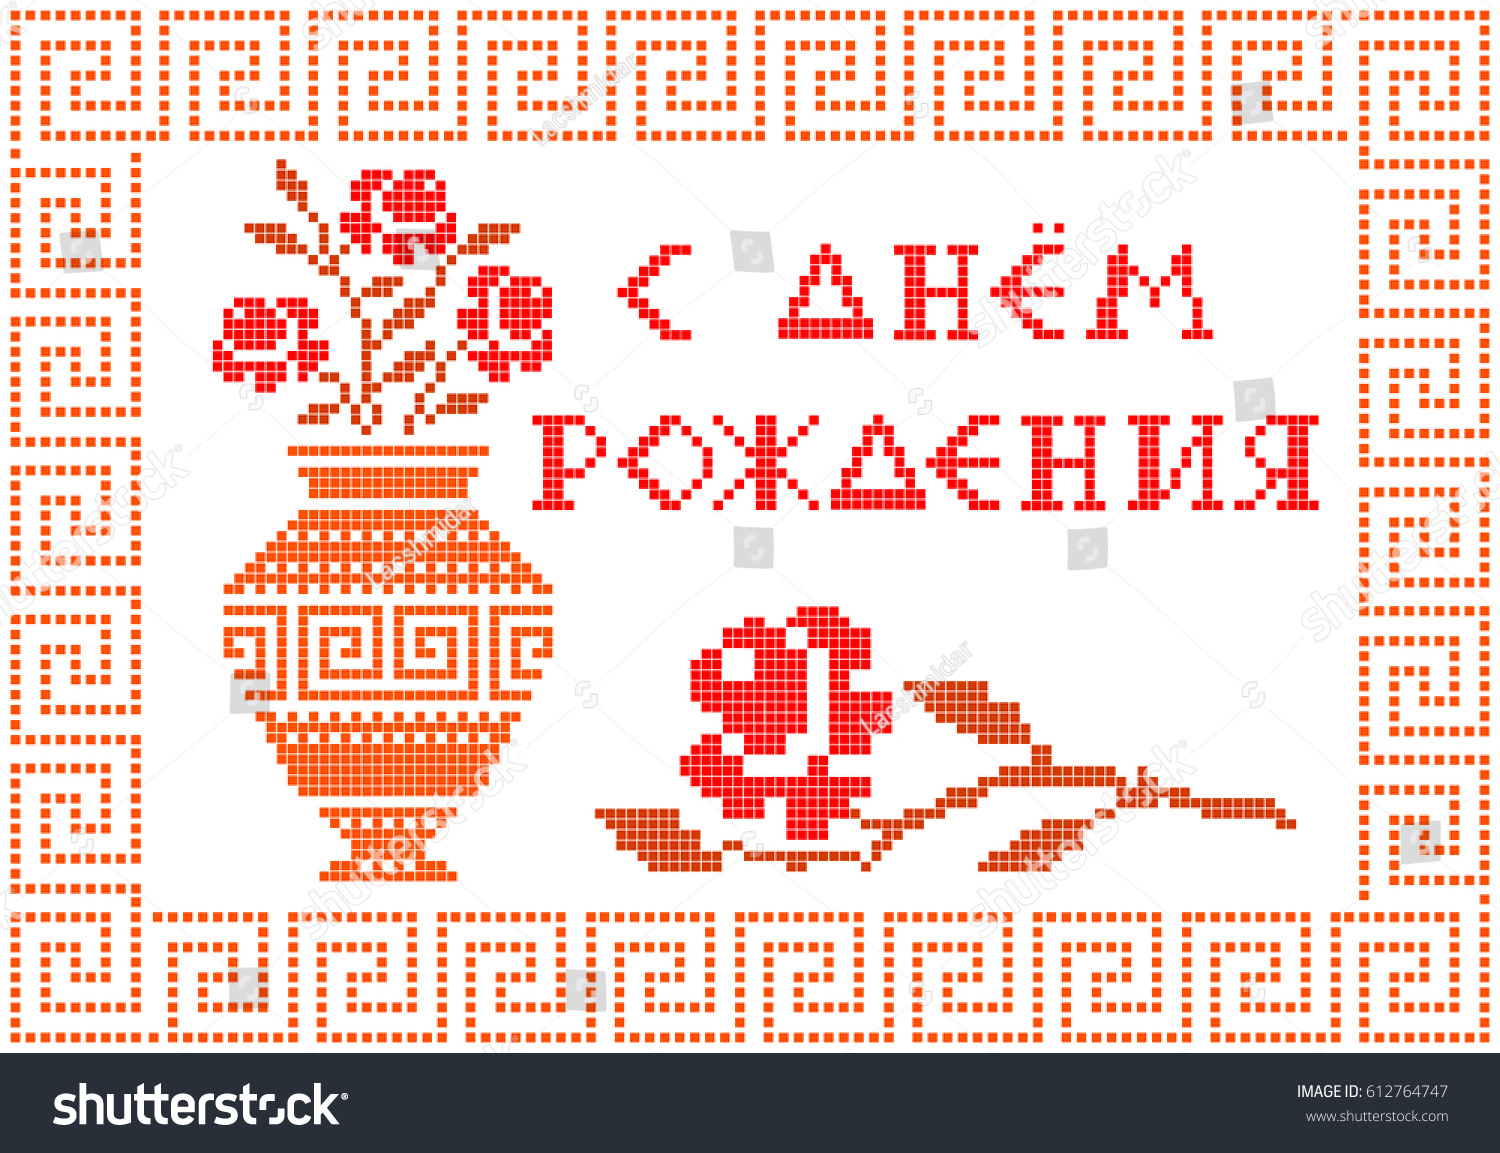 Happy birthday embroidered handmade cross stitch stock vector happy birthday embroidered handmade cross stitch ethnic greeting card in greek style written in russian kristyandbryce Image collections